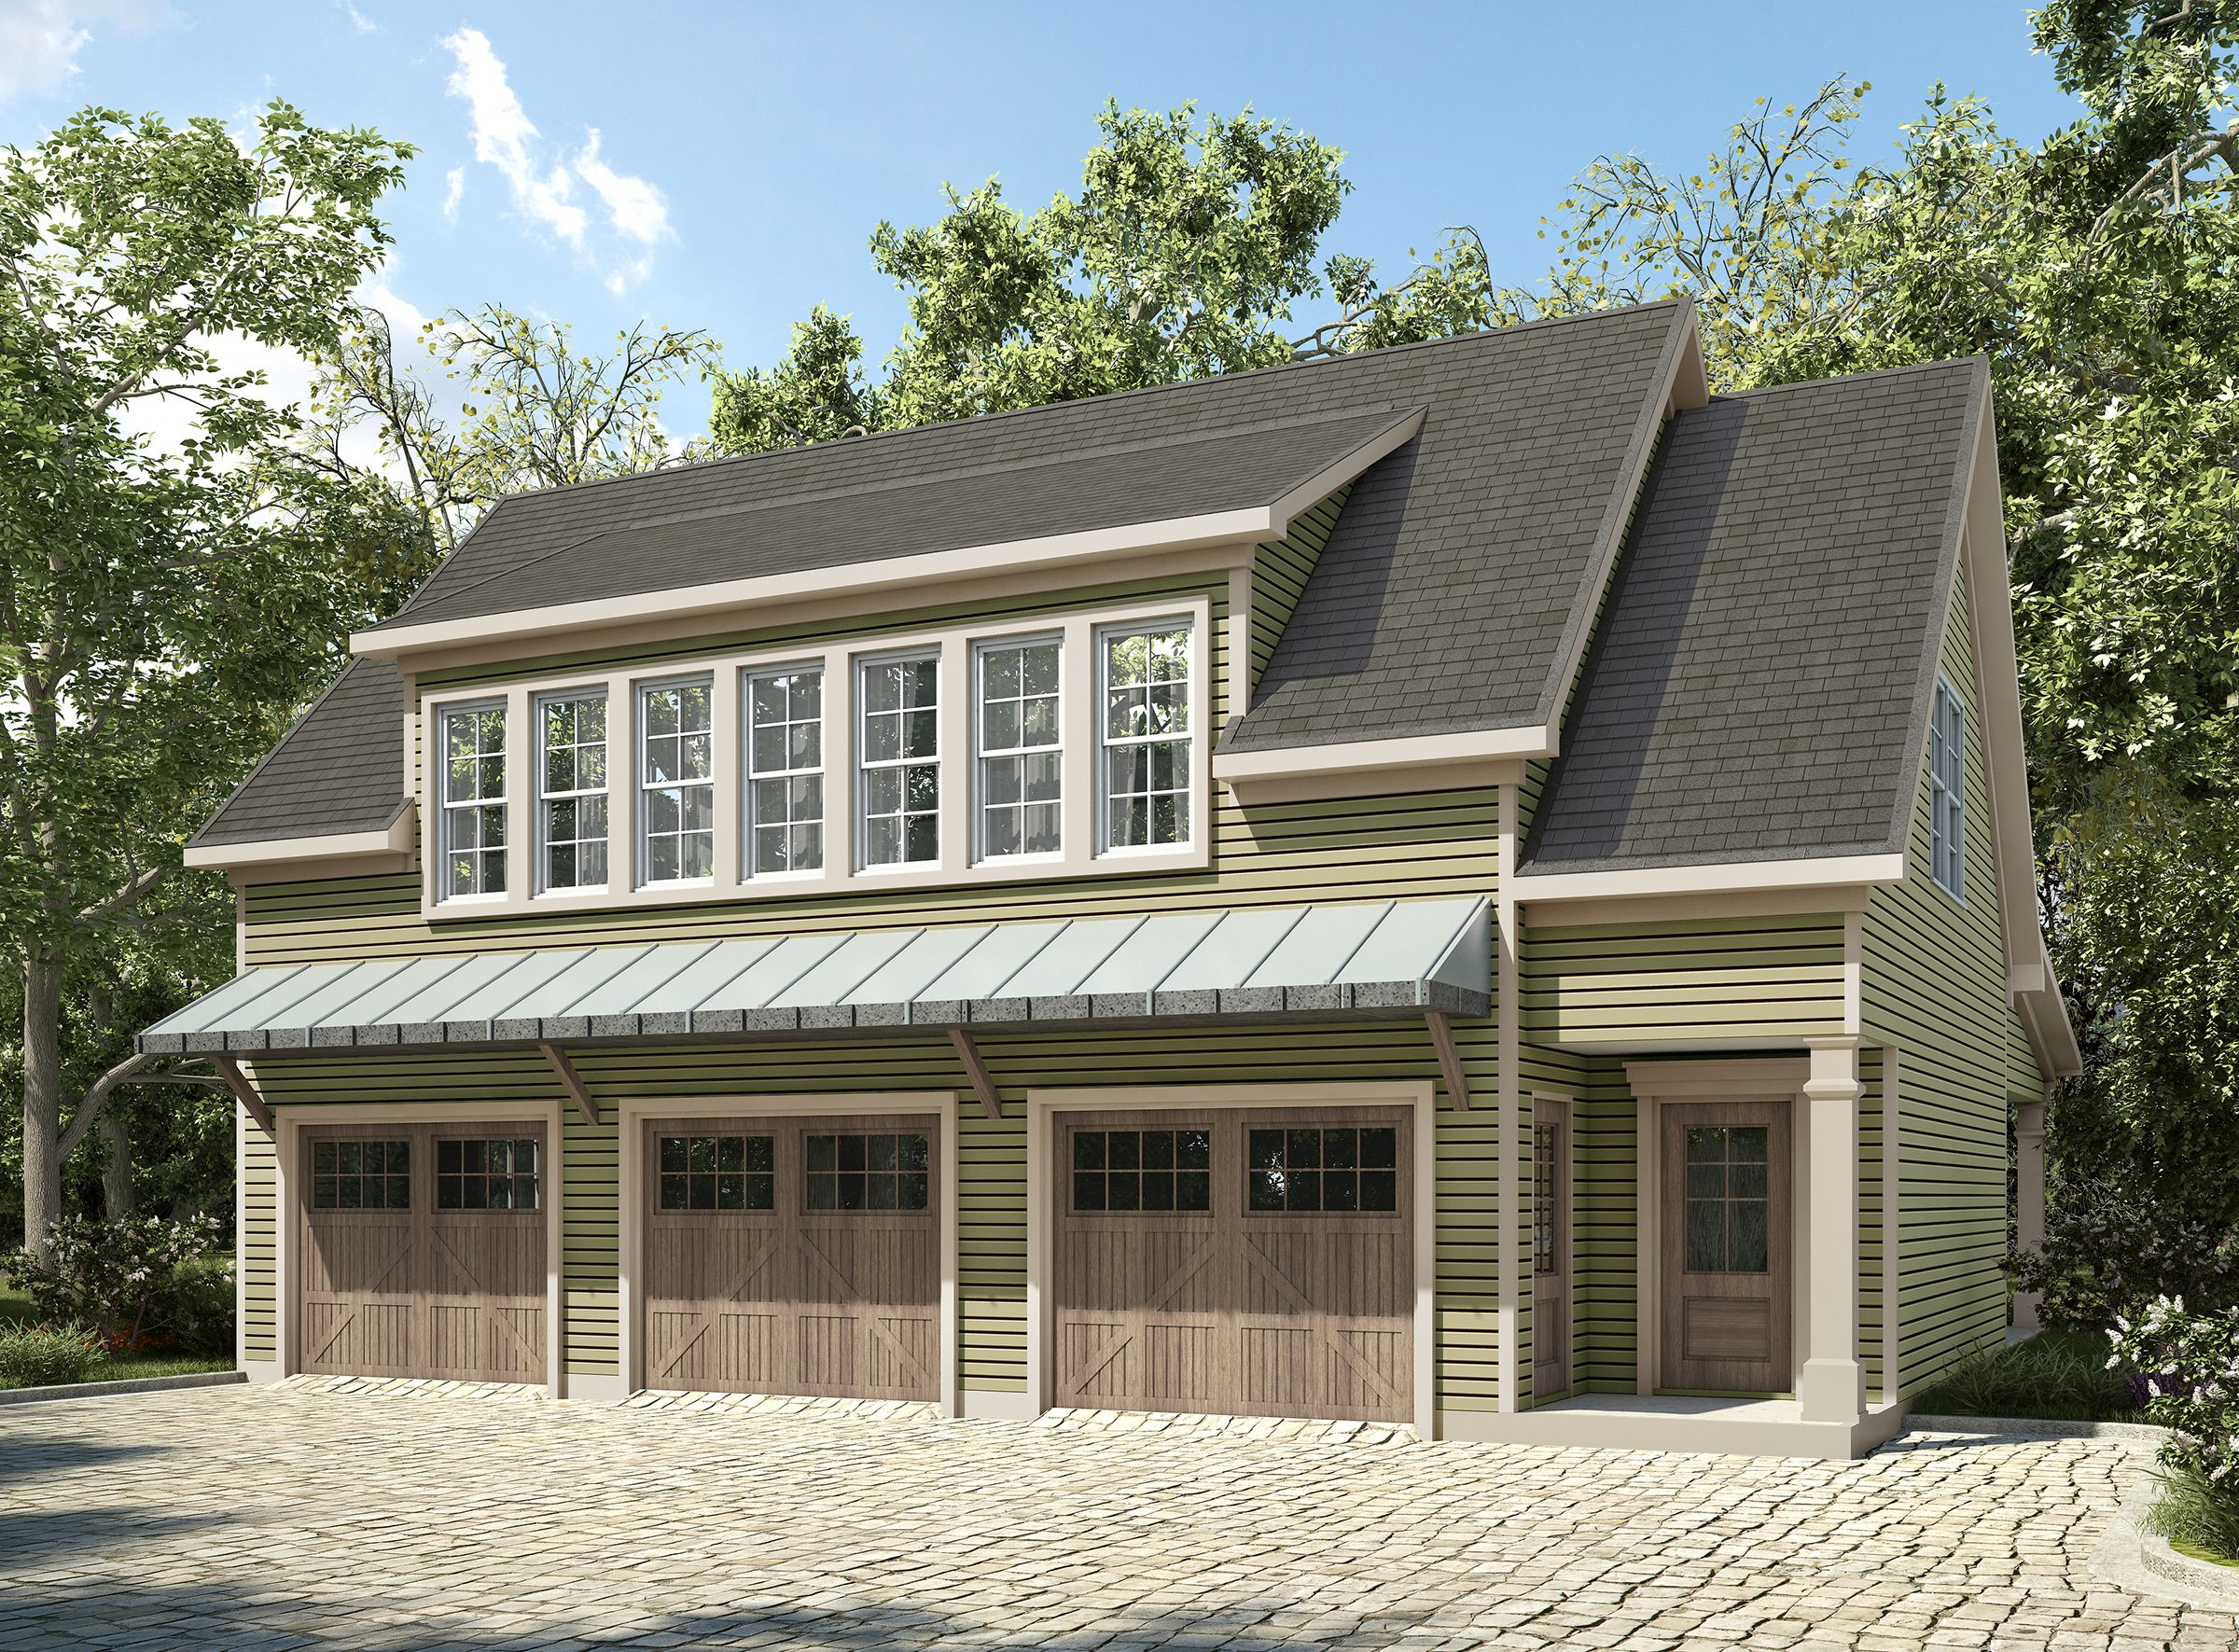 Plan 36057dk 3 bay carriage house plan with shed roof in for Carriage barn plans